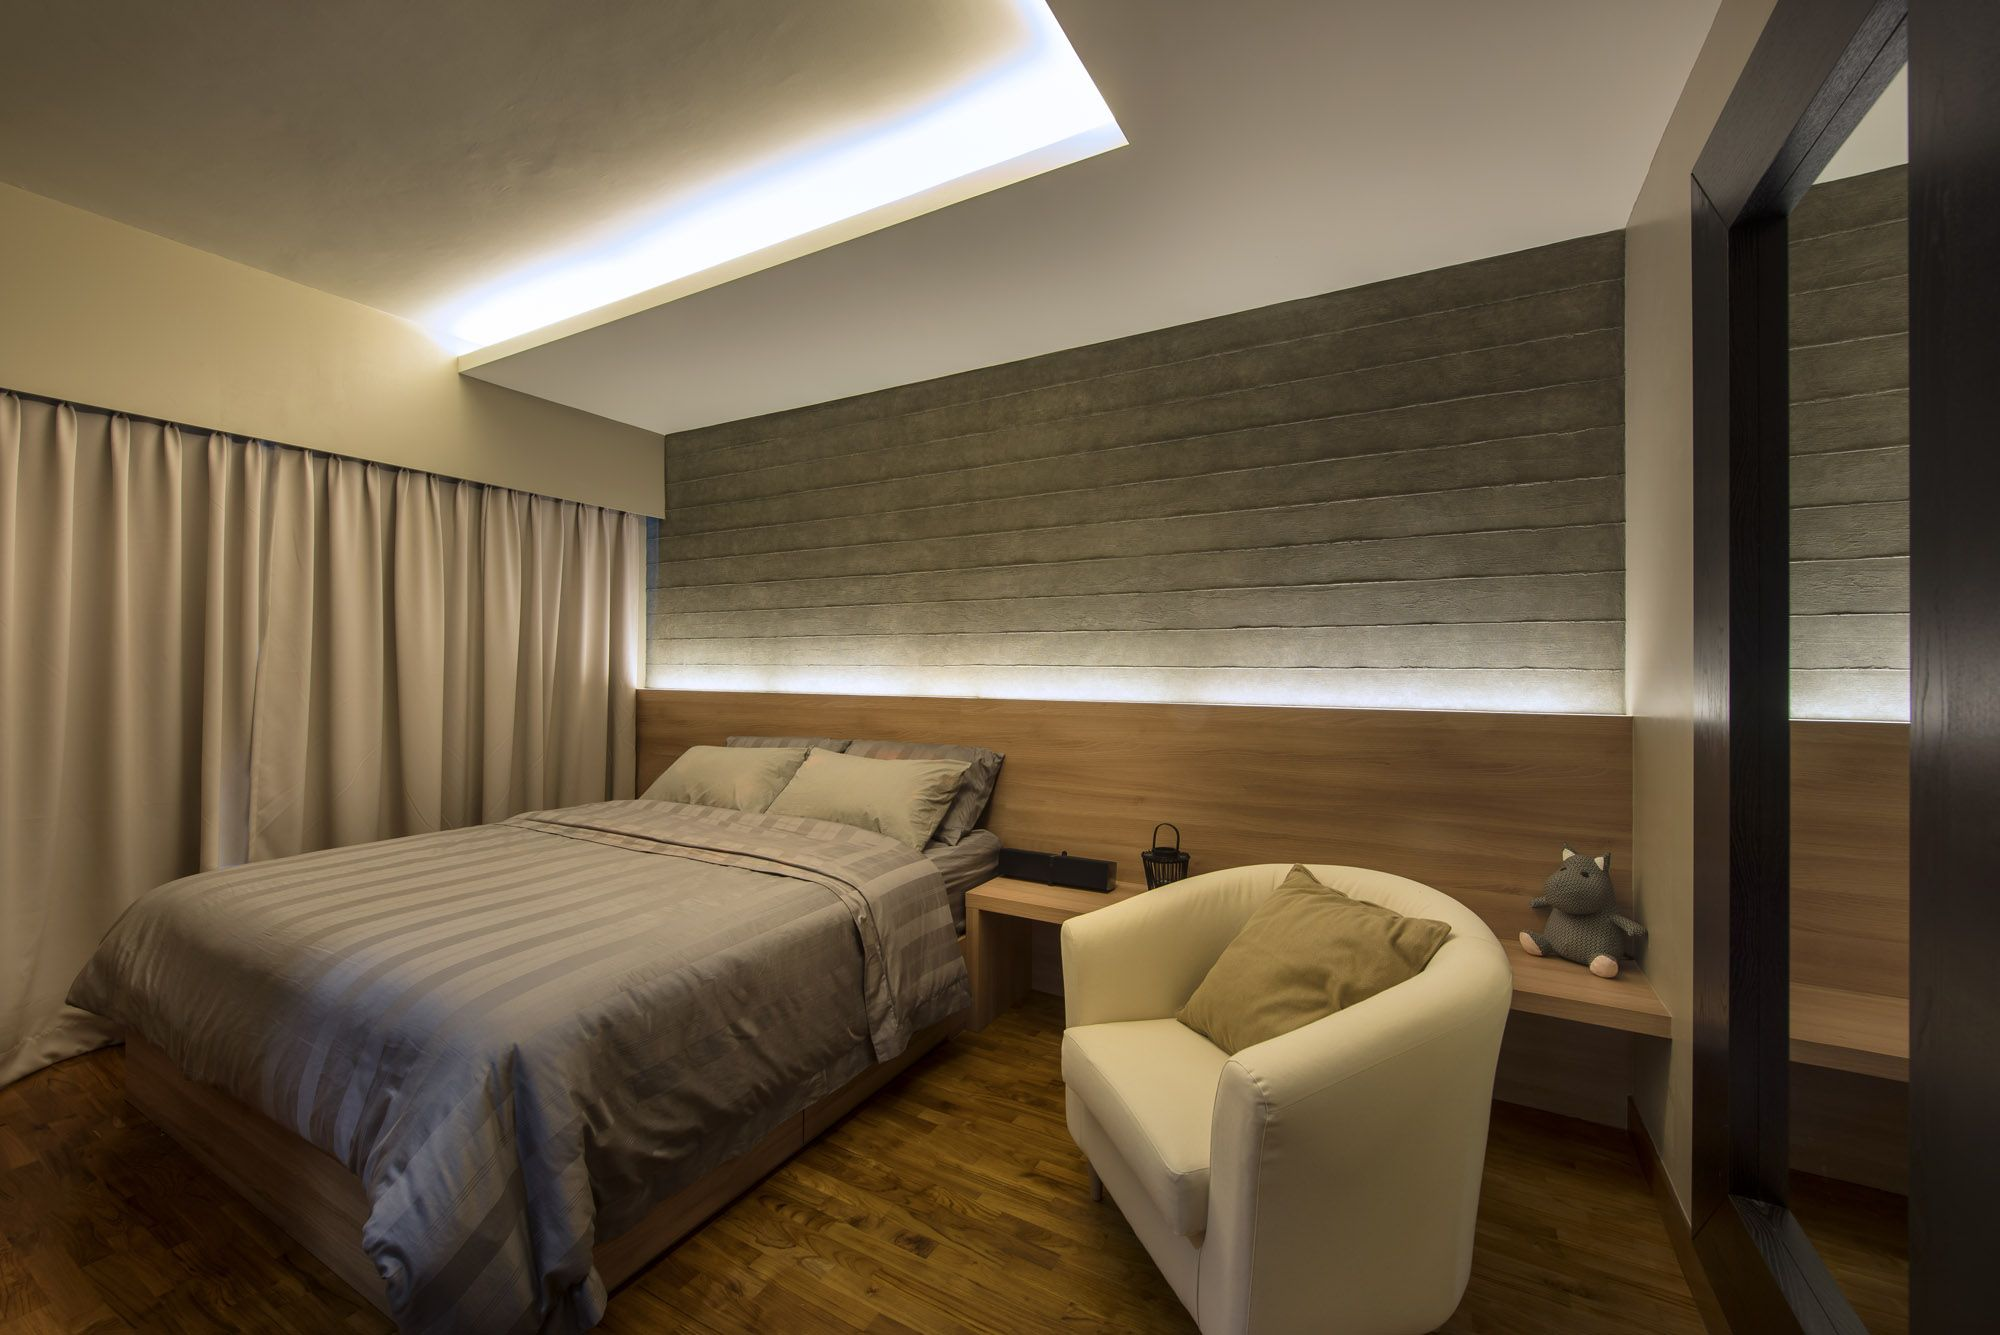 Interior design by rezt 39 n relax of singapore bedroom for Interior design styles by decade